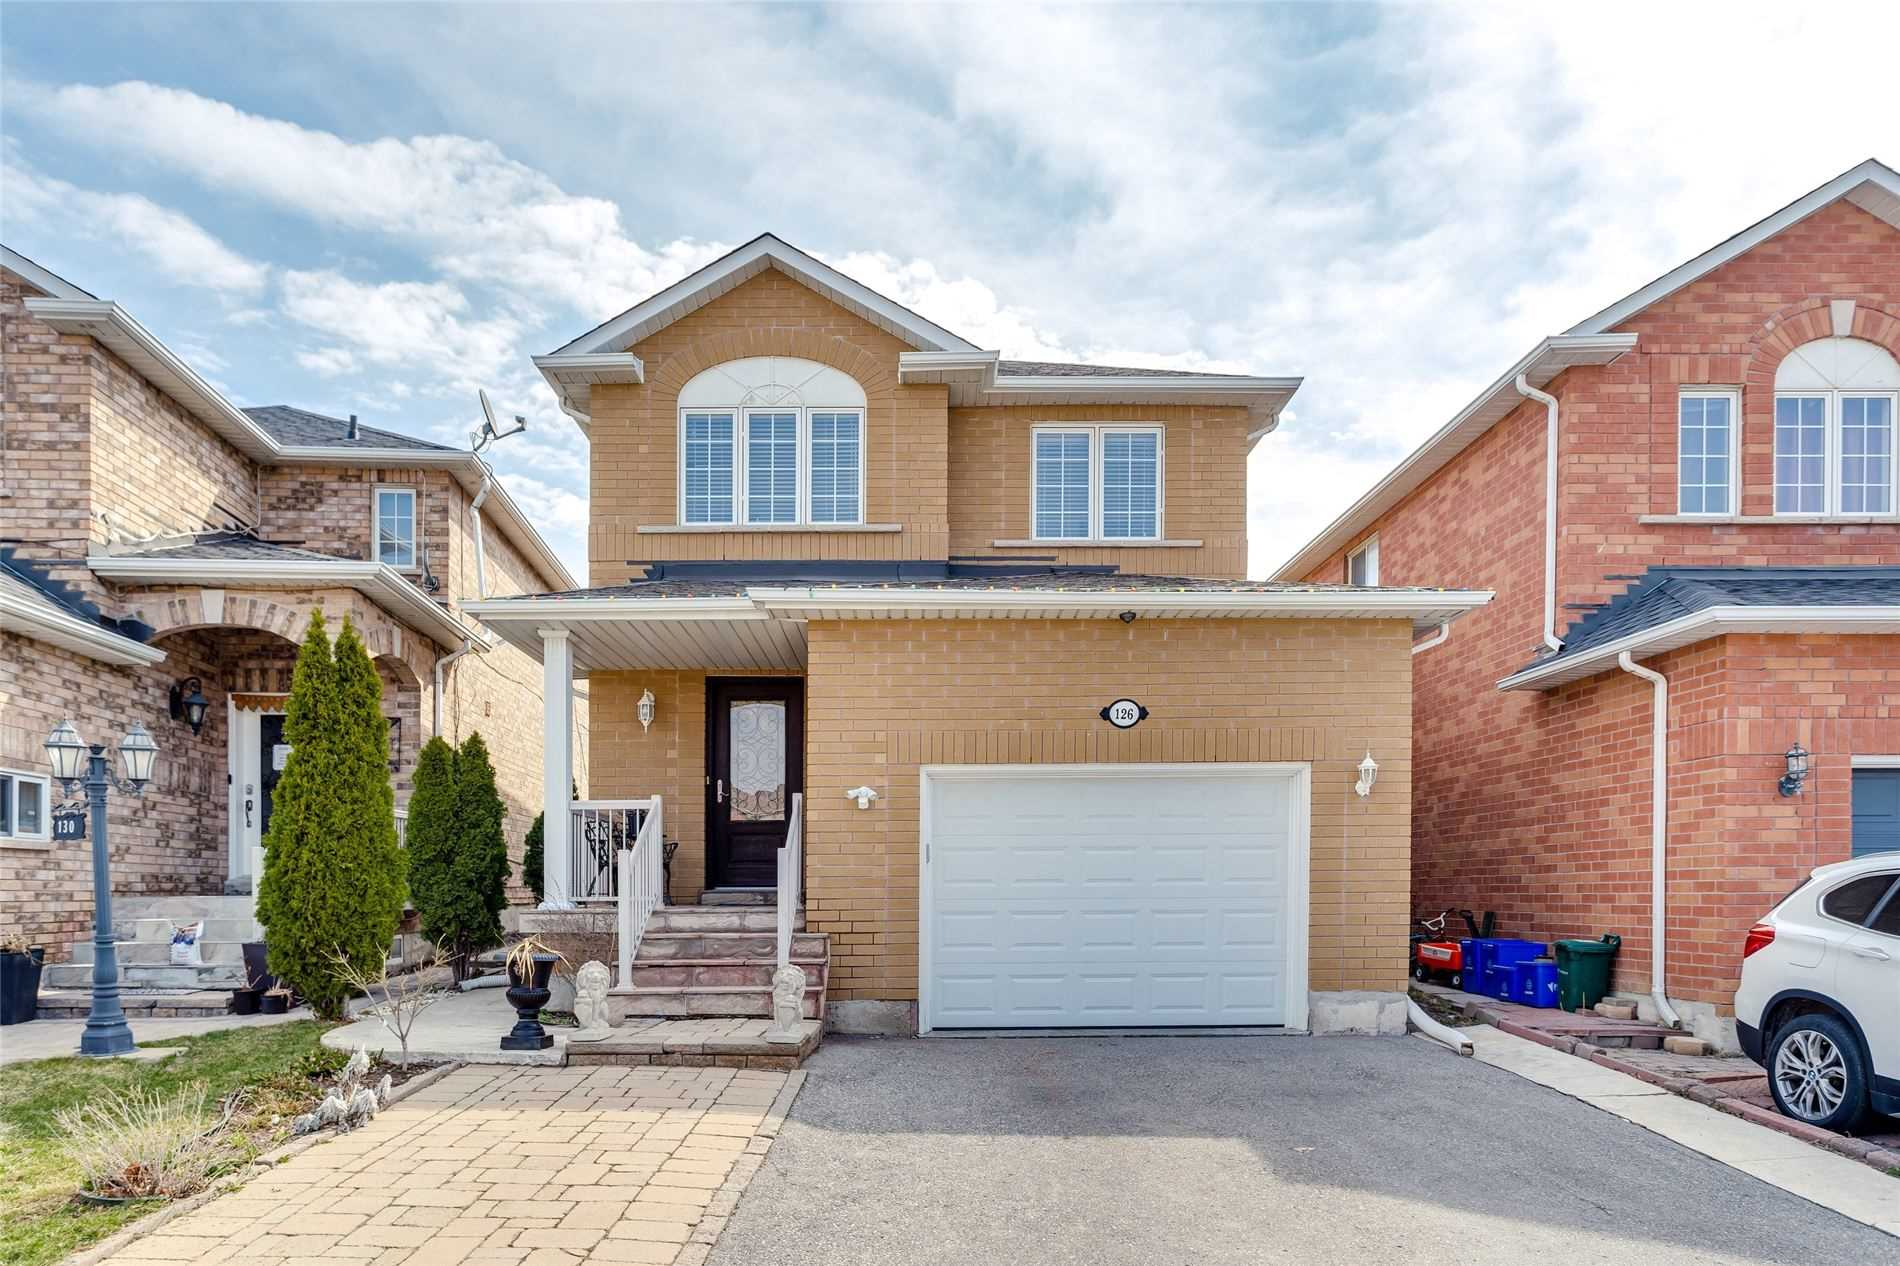 126 Purcell Cres - N5187043- $1,299,000